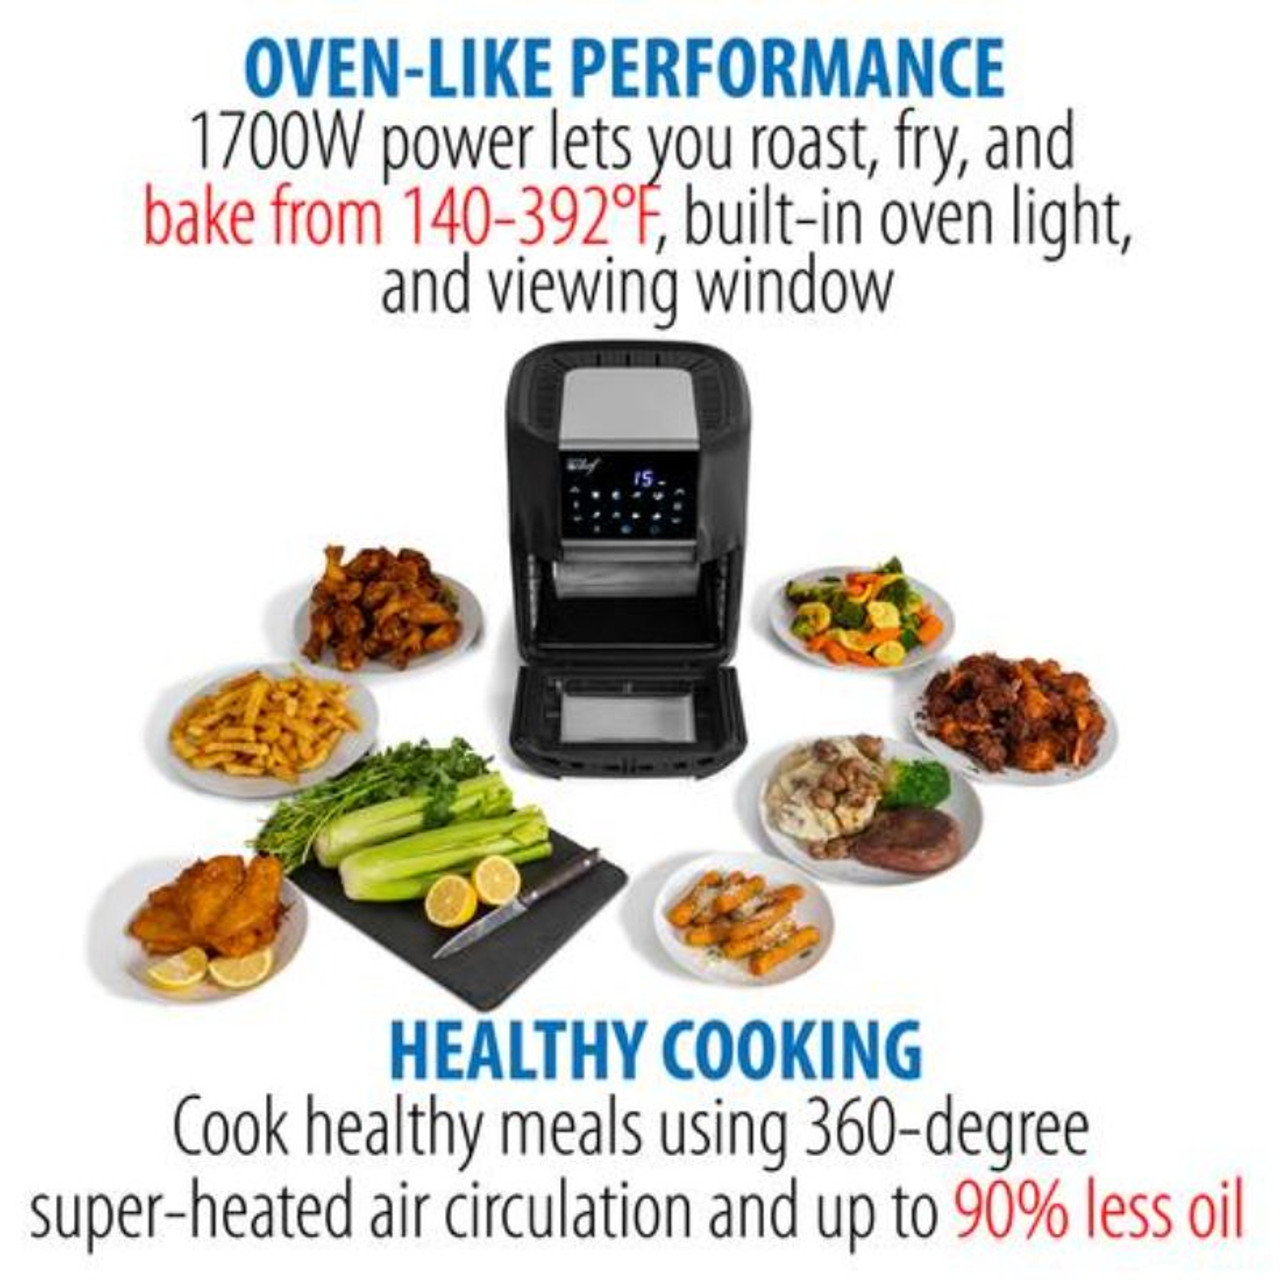 Deco Chef 12.7QT Digital Air Fryer Oven, with 3 Racks, Rotisserie, 8 Meal Presets, Black